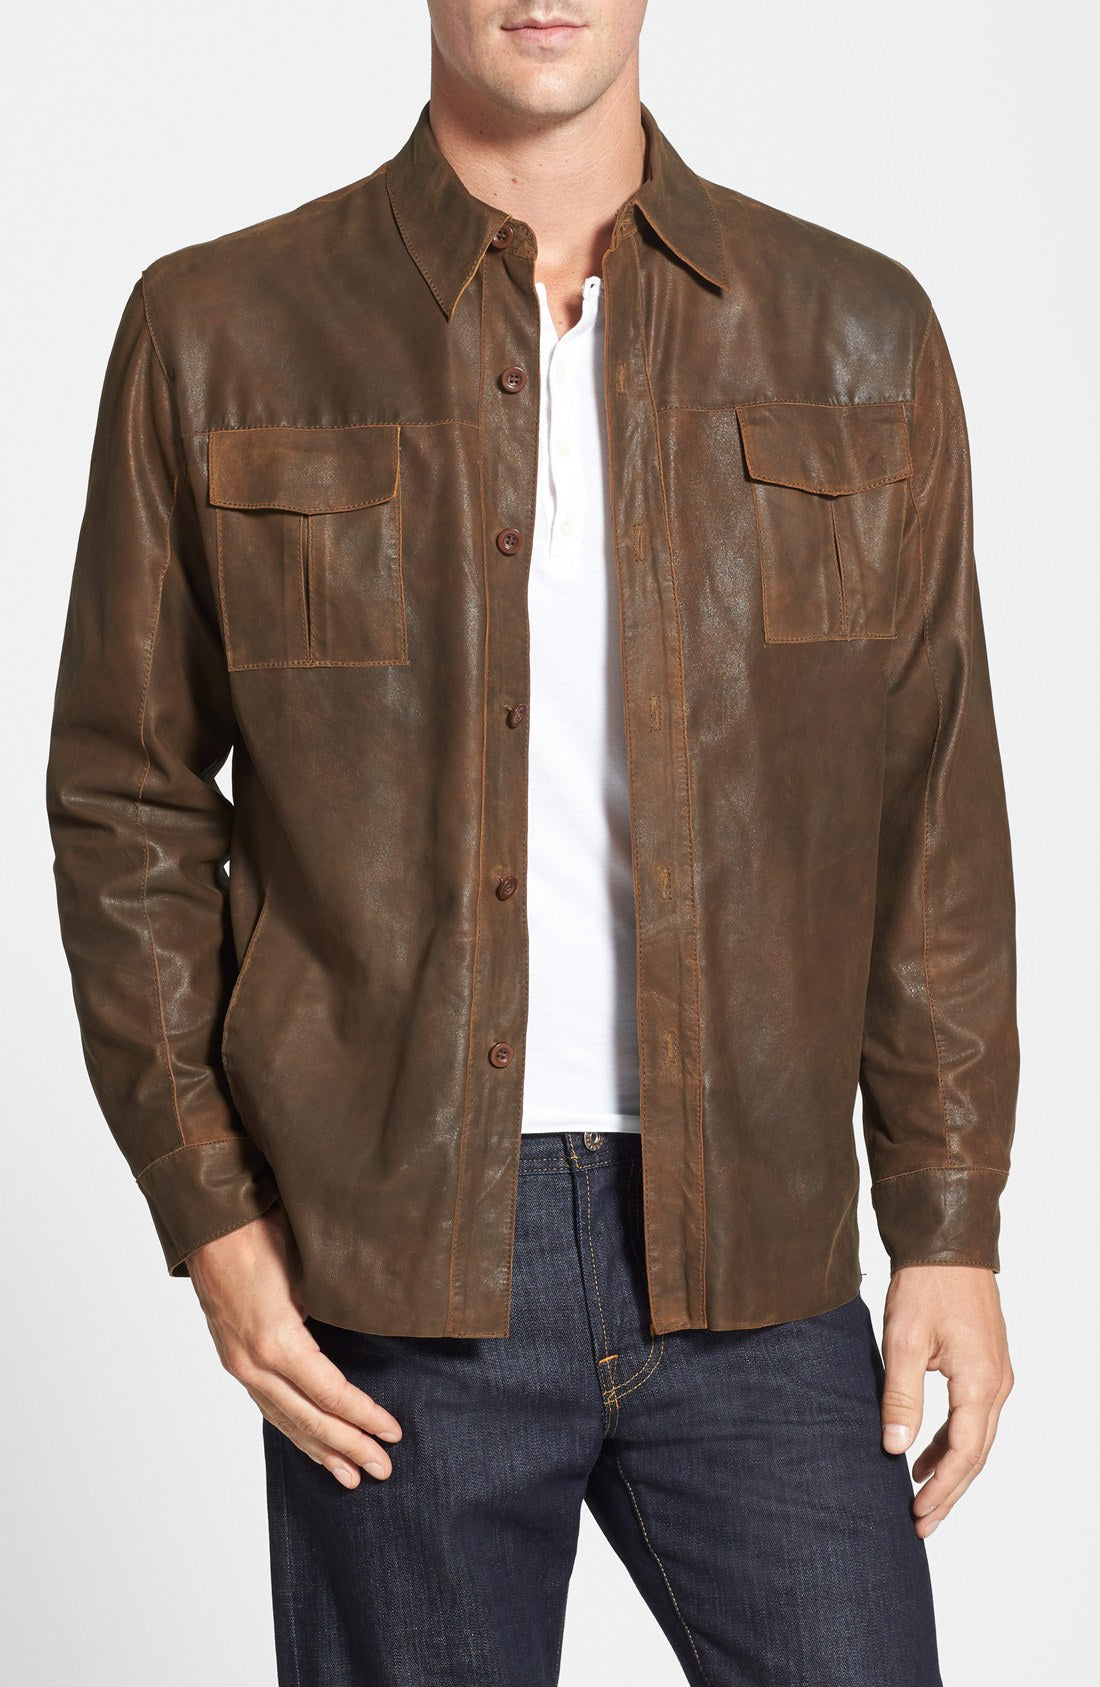 Brown Leather Shirt For a casual look